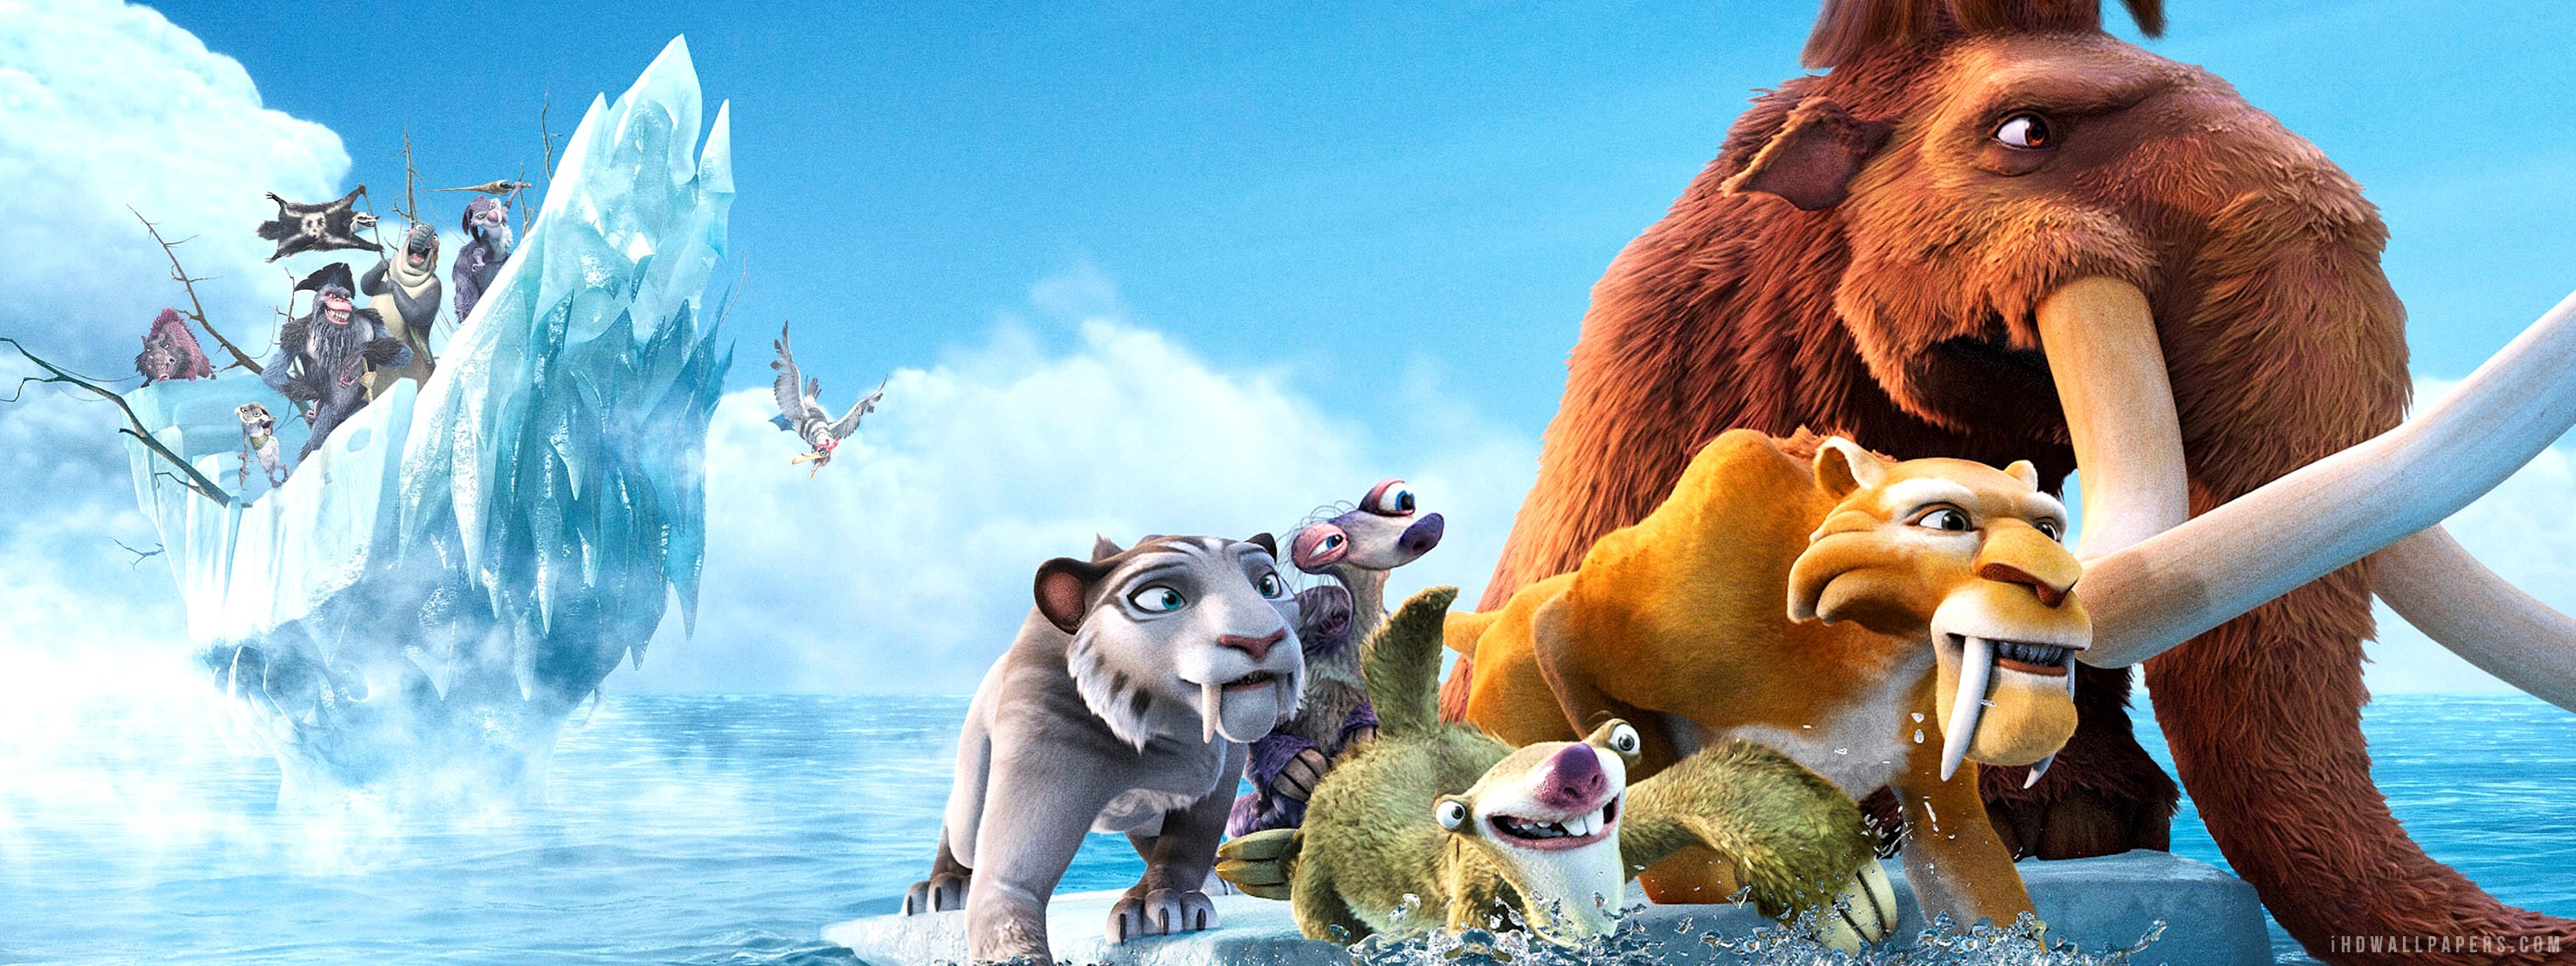 ice age 4 movie 3200x resolution 183814